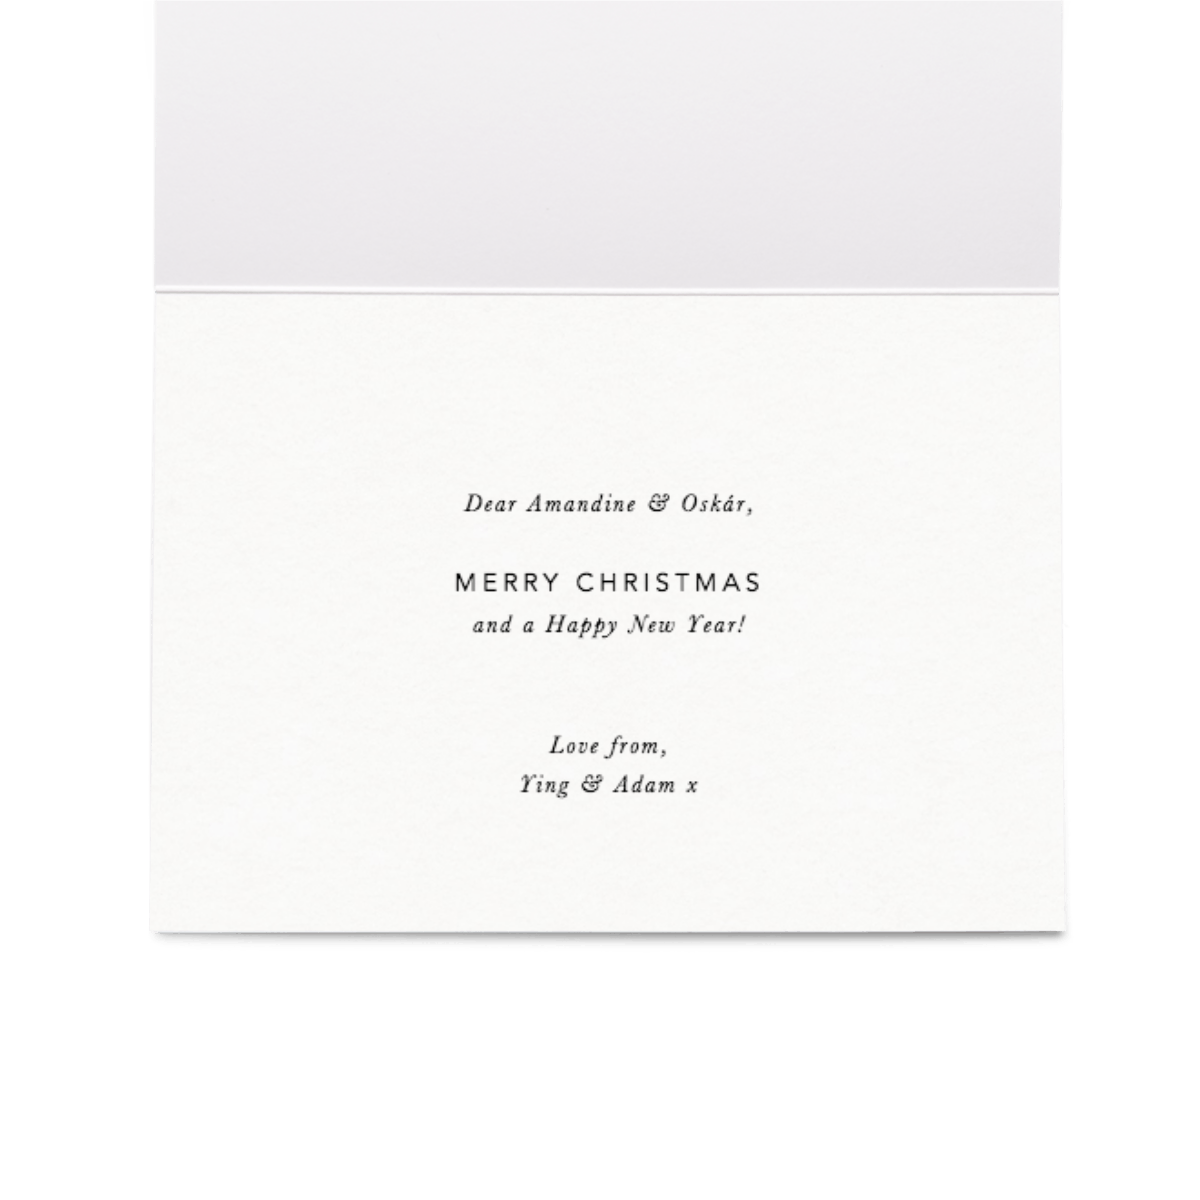 Https%3a%2f%2fwww.papier.com%2fproduct image%2f30914%2f20%2fseason s greetings starry 6745 inside 1542209692.png?ixlib=rb 1.1